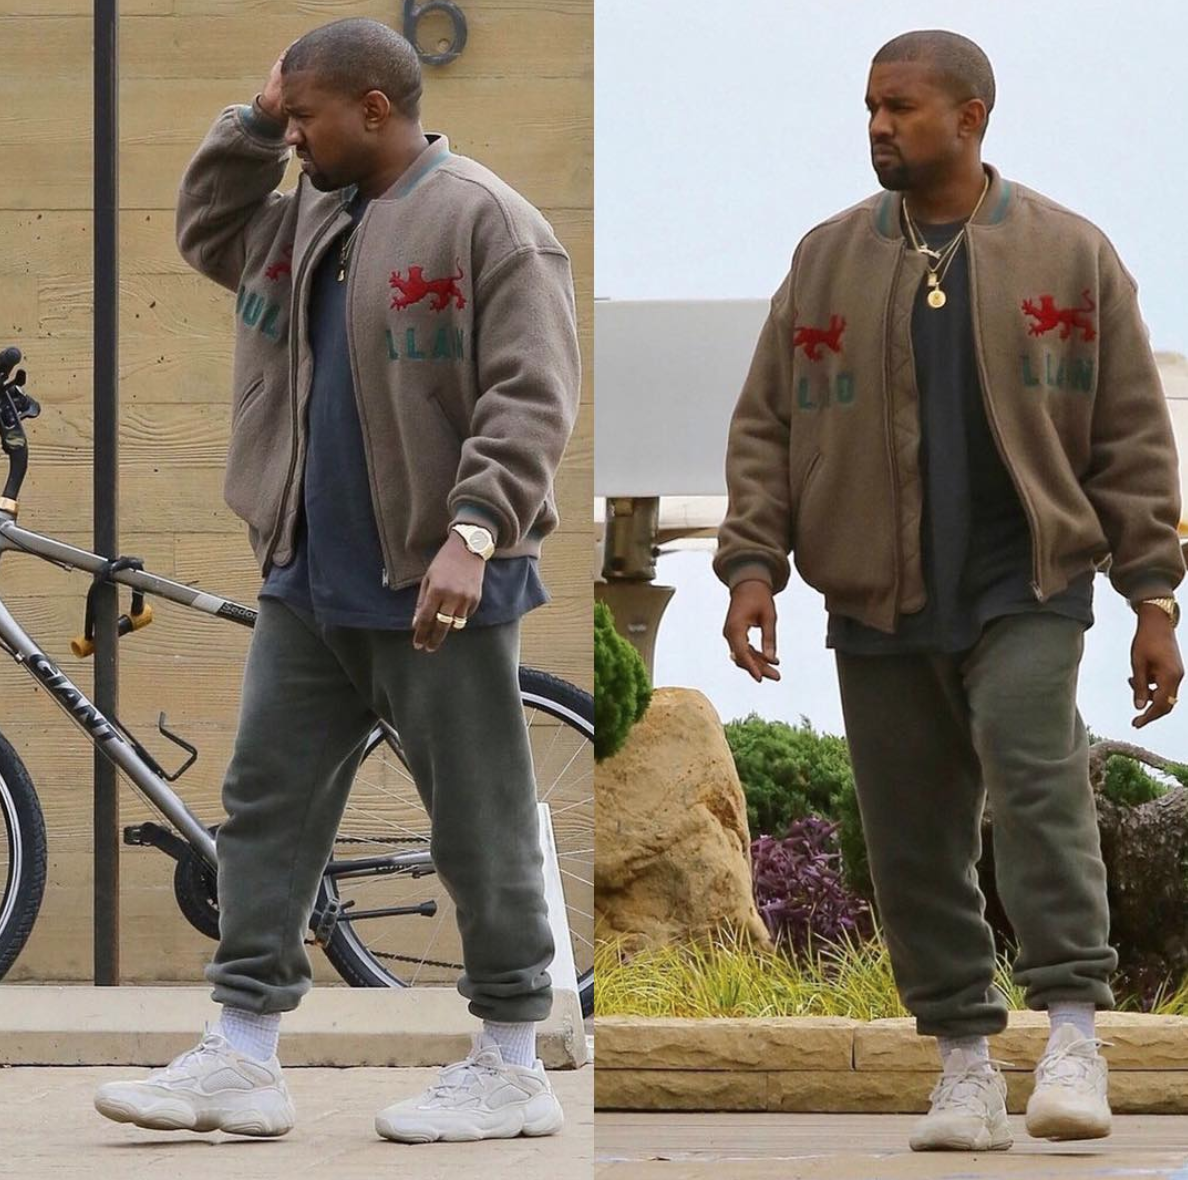 SPOTTED: Kayne West In YEEZY Season 5 Jacket And adidas YEEZY Mud Rat 500 Sneakers